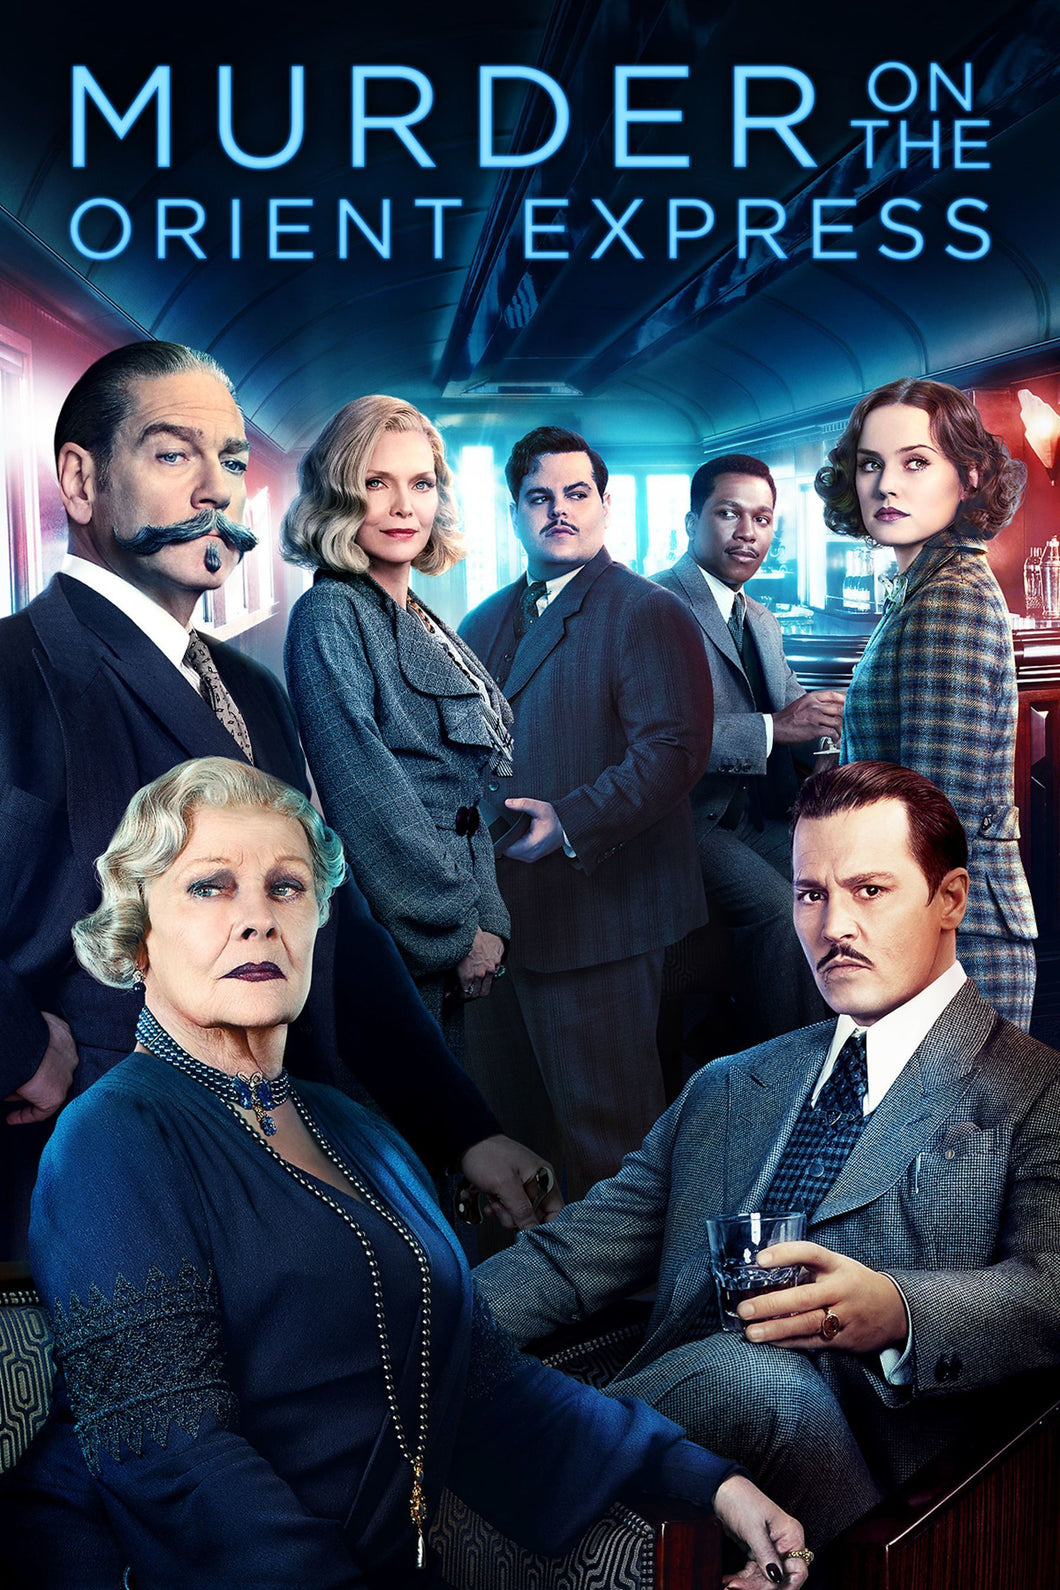 Murder on the Orient Express | HD Movies Anywhere Code Ports to Vudu, iTunes, GP - Movie Sometimes